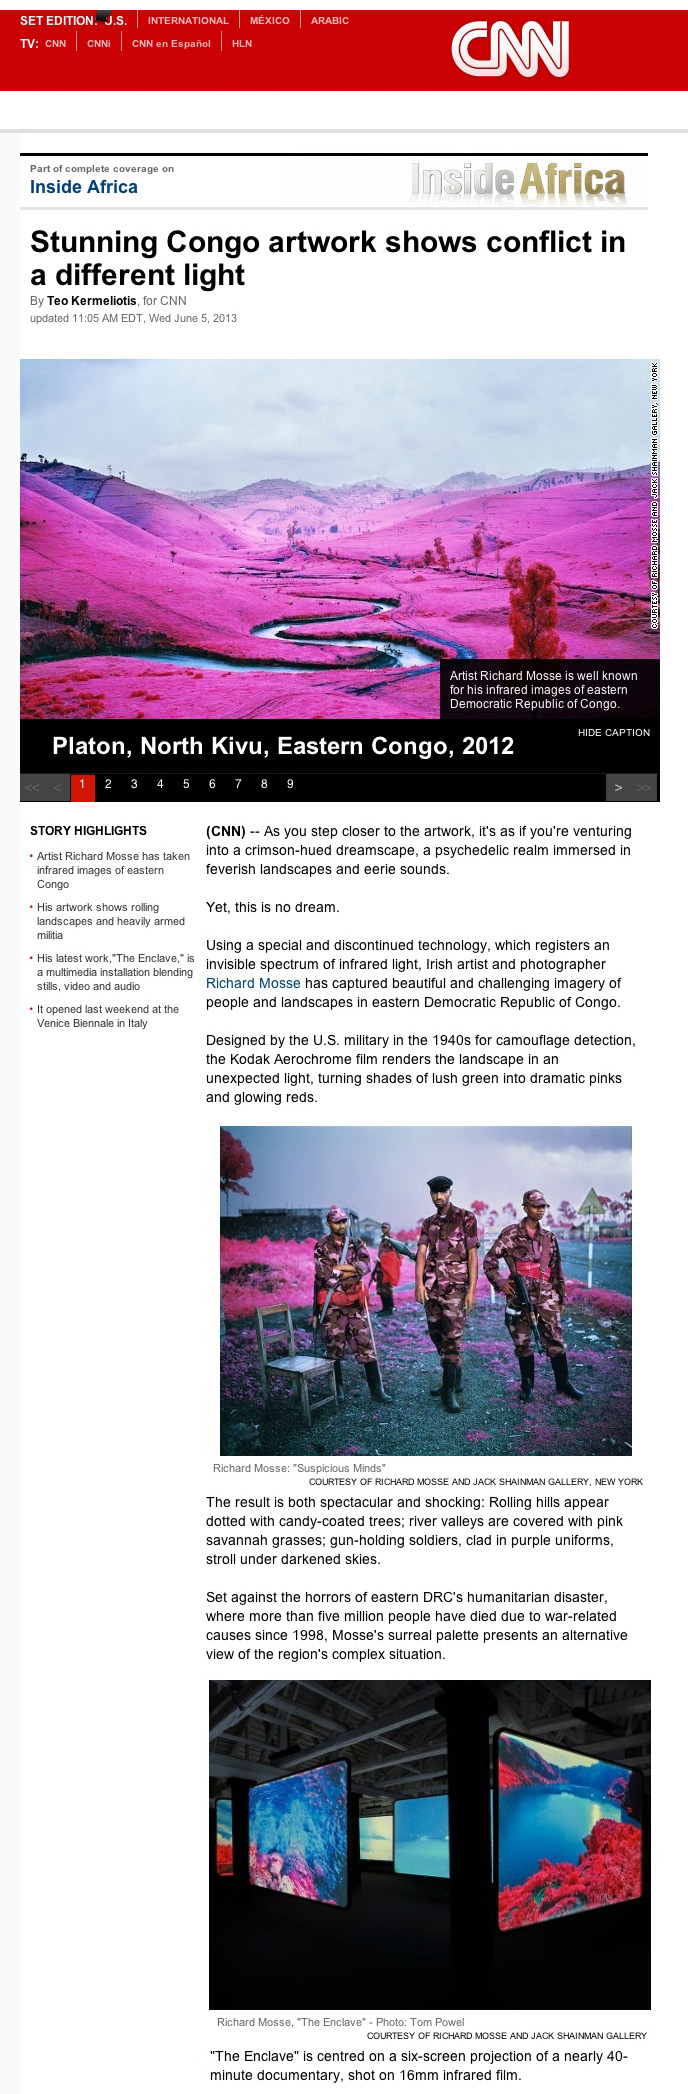 RMO_Stunning Congo artwork shows conflict in a different light - CNN.com (20130627).jpg